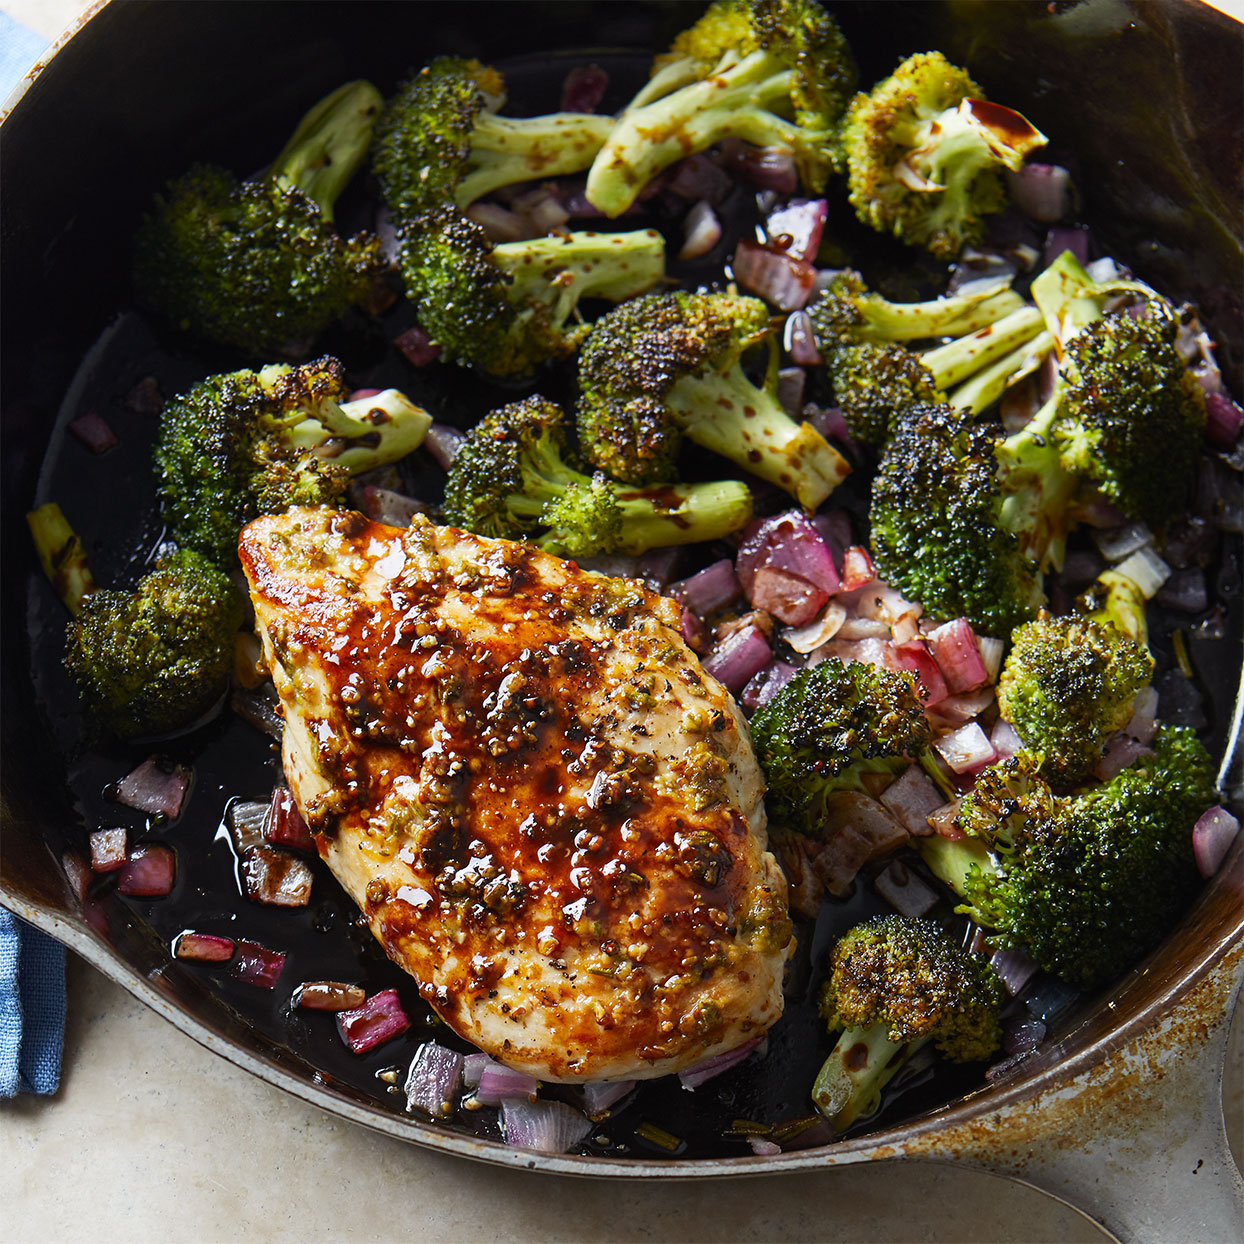 The one-two punch of searing and roasting results in this perfectly browned, moist, and tender skillet chicken recipe.